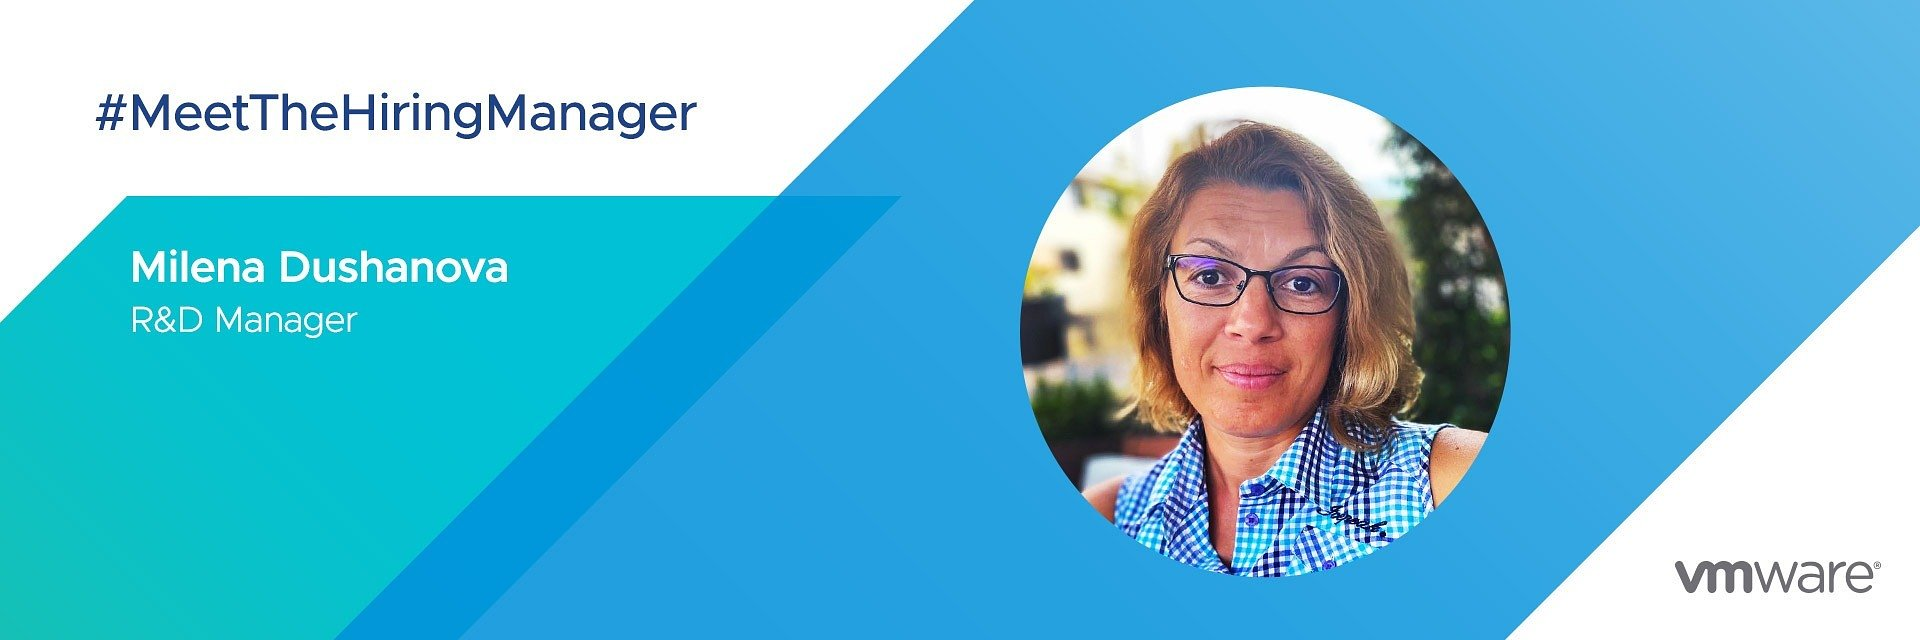 The Hiring Manager: Milena Dushanova, R&D Manager, VMware Engineering Services (VES)